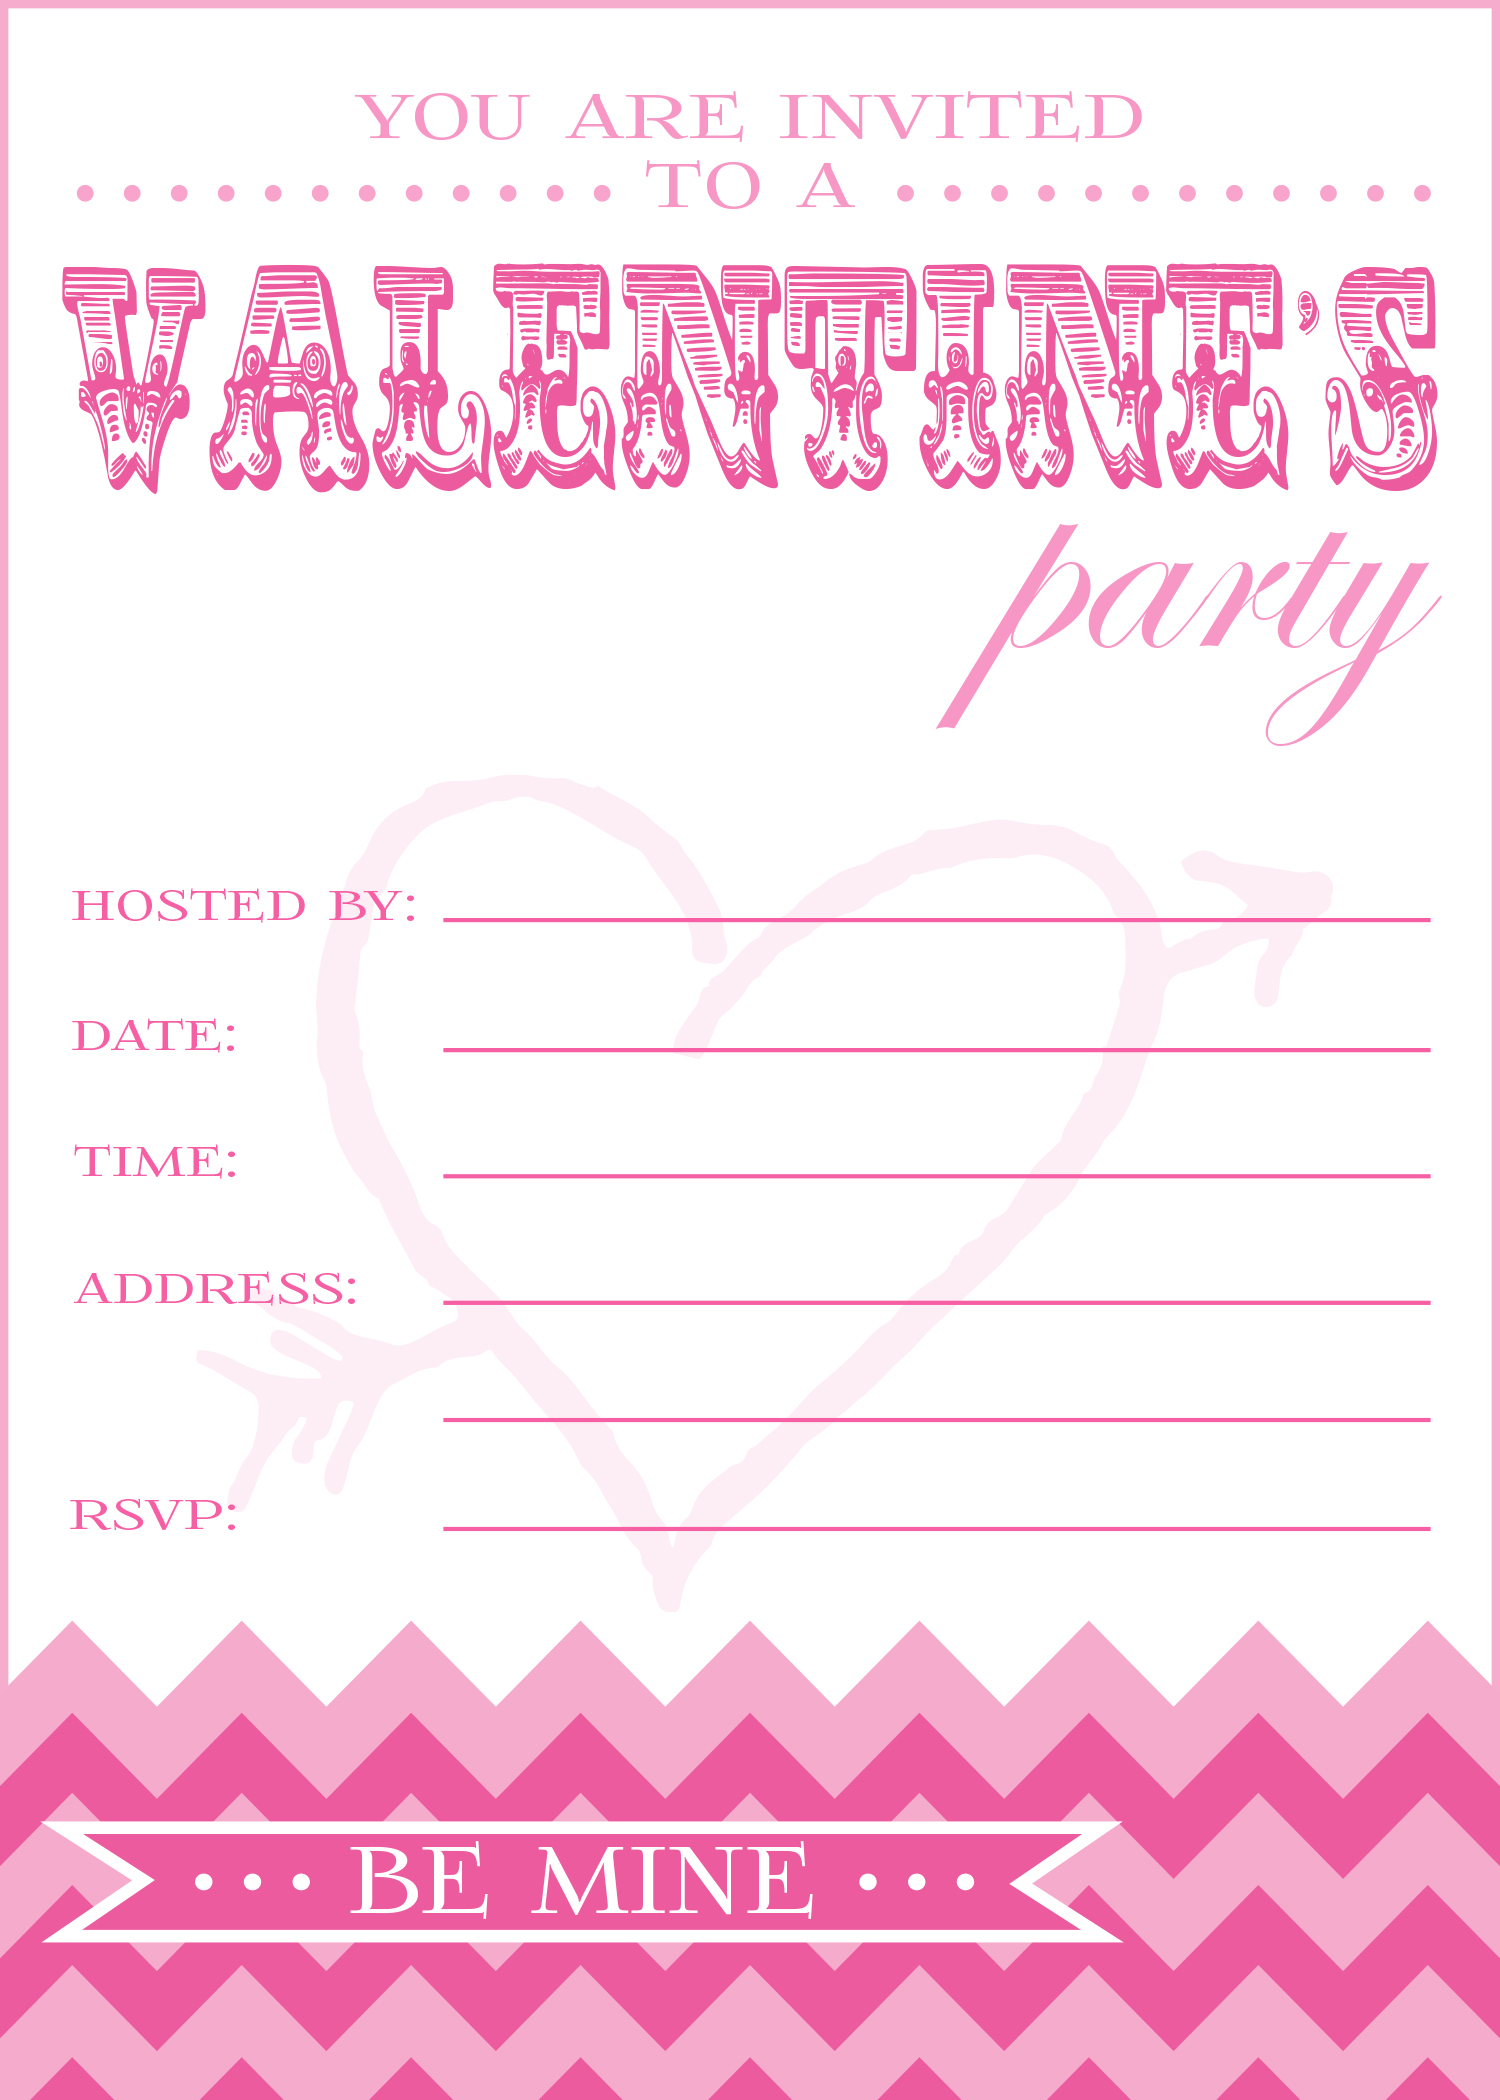 9 Images of Valentine's Day Printable Party Invitations